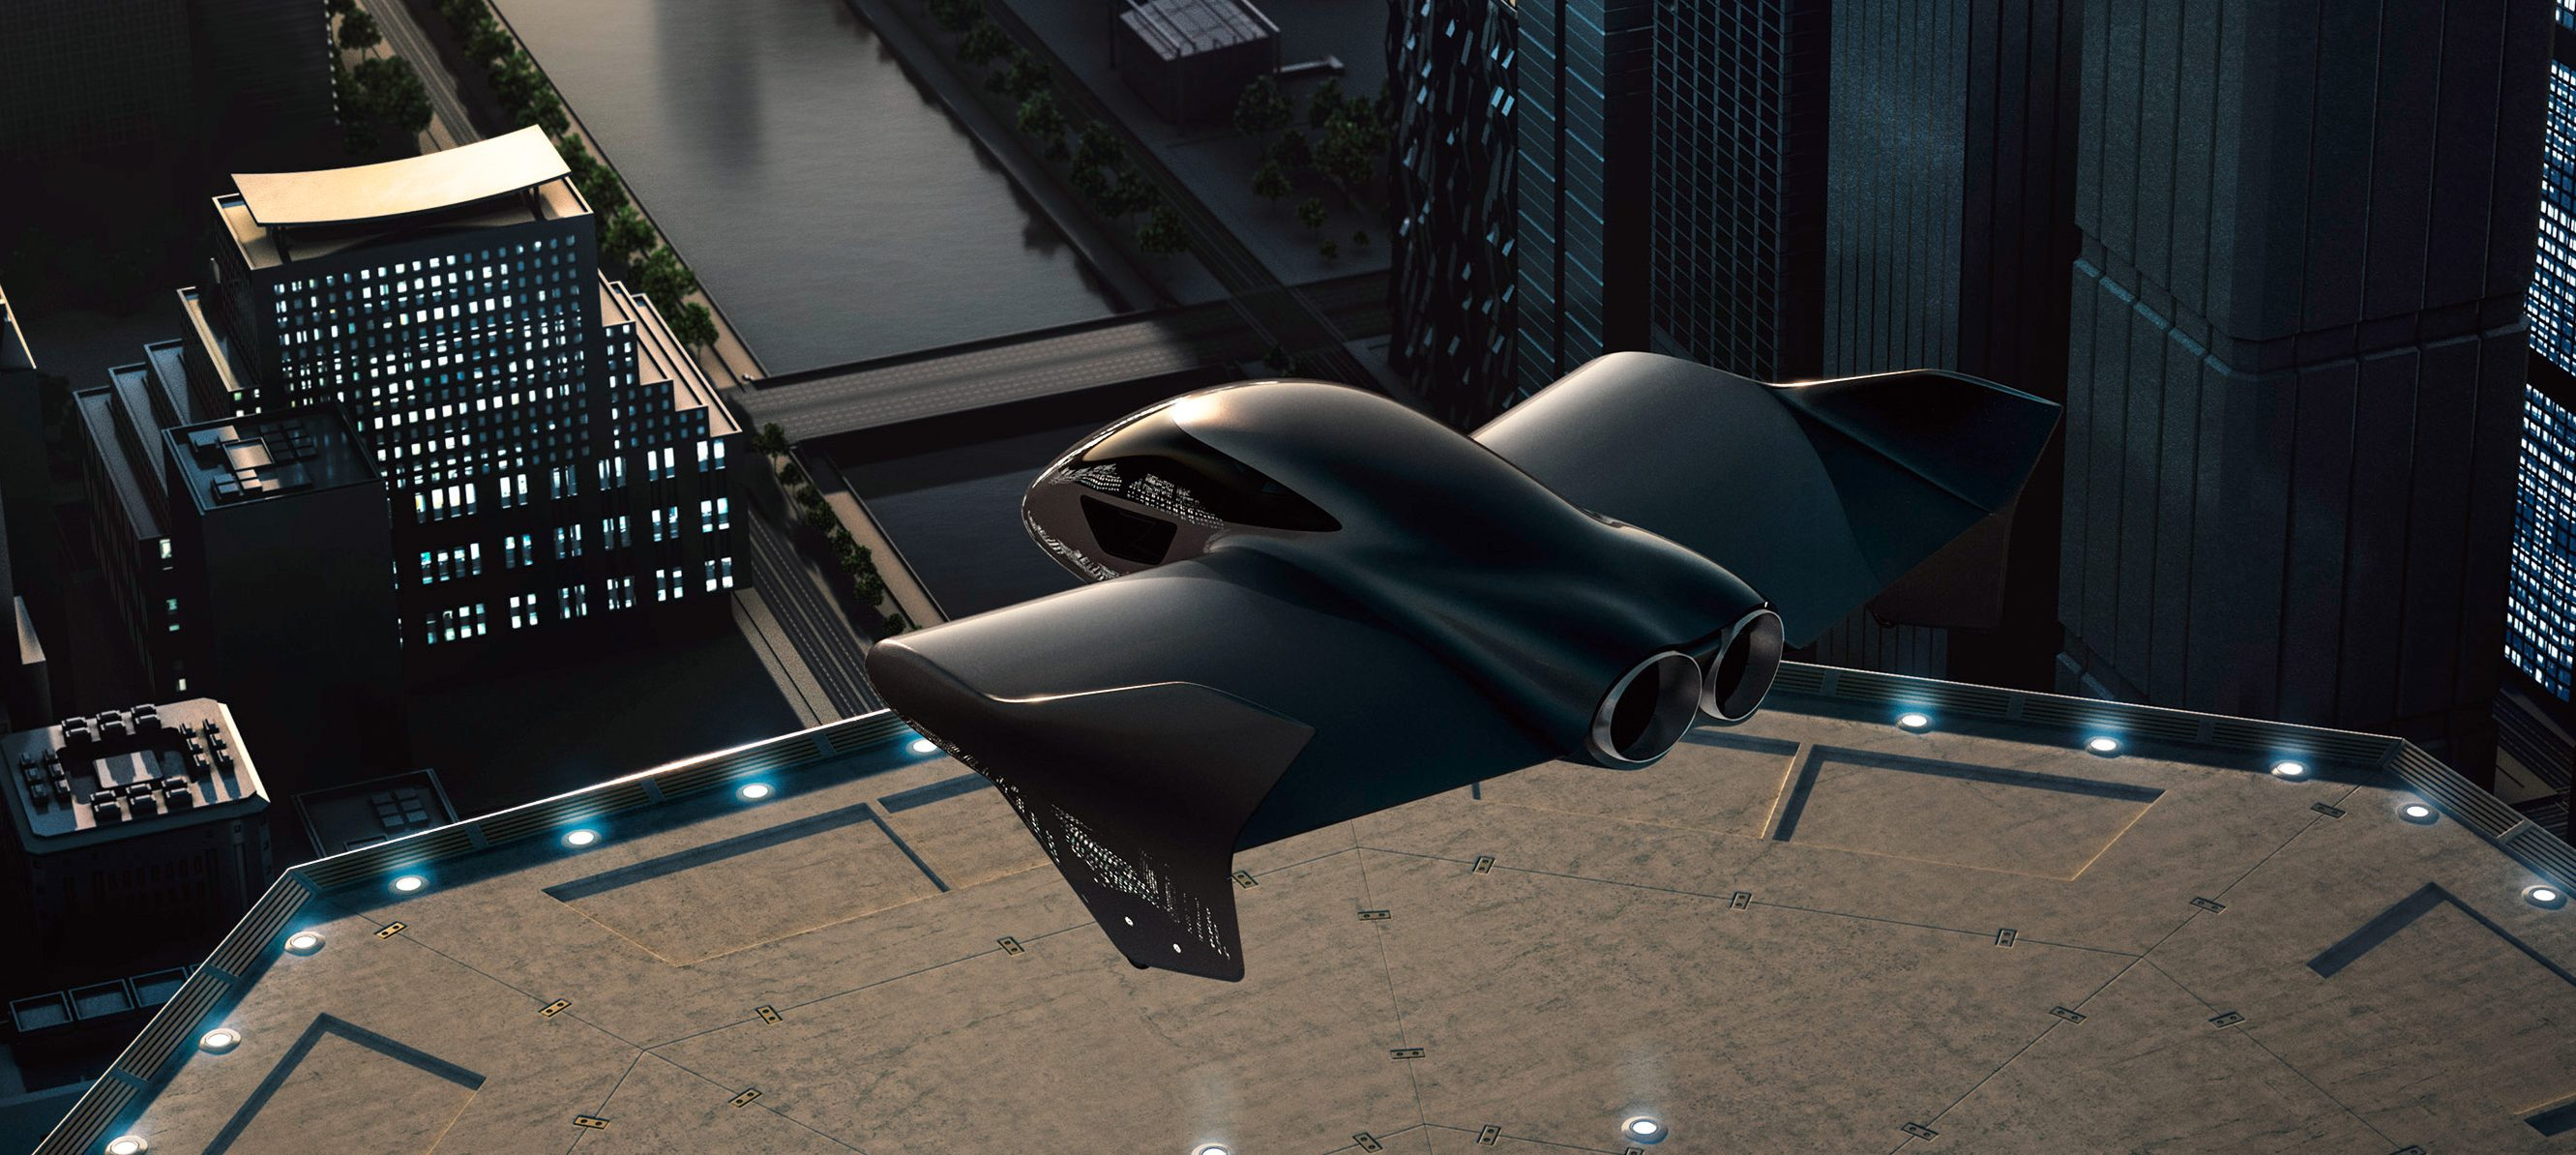 Porsche is building an electric vertical take-off and landing aircraft (eVTOL) with Boeing - Electrek